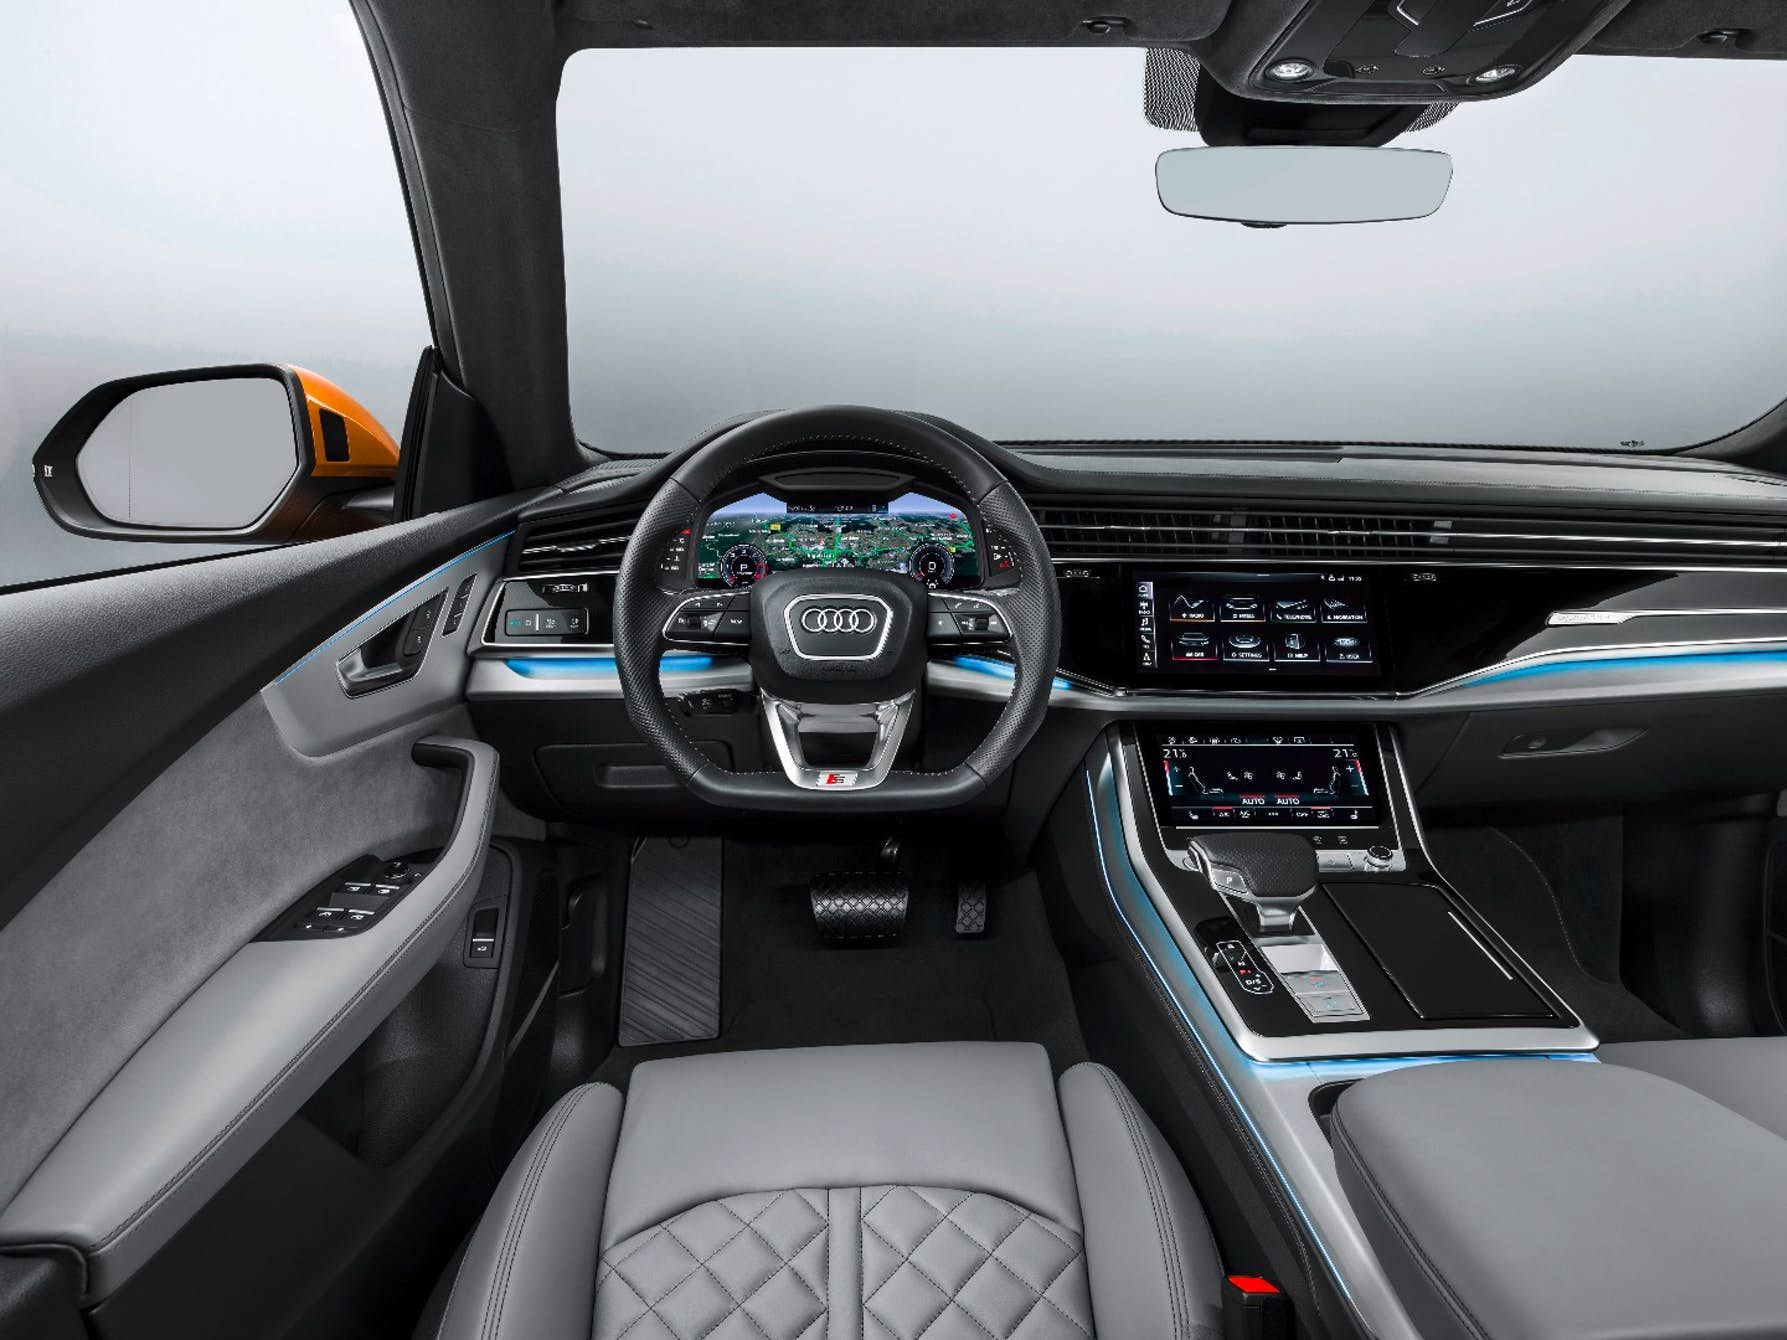 The Interior Of The Audi Q8 Looks Really Good And Well Laid Out Audi Audi Suv Renault Megane